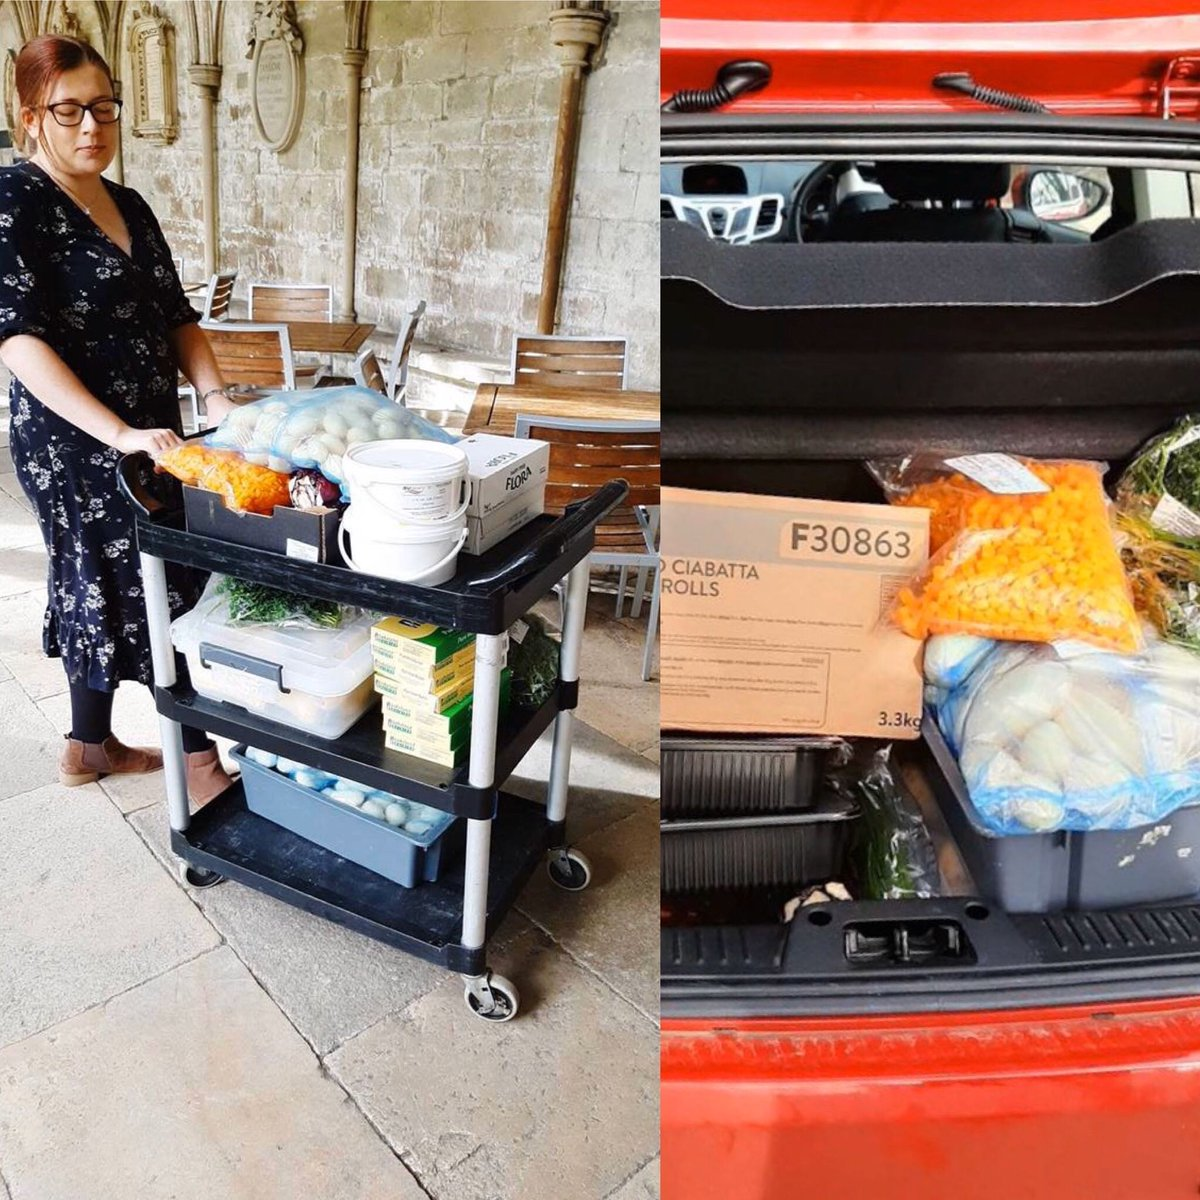 Massive thanks to Kim, Sarah and all @SalisburyCath who donated food to Clouds House while they were emptying their kitchen due to closure. So far we've made a delicious roast dinner and cheesecake for all the clients! ❤️